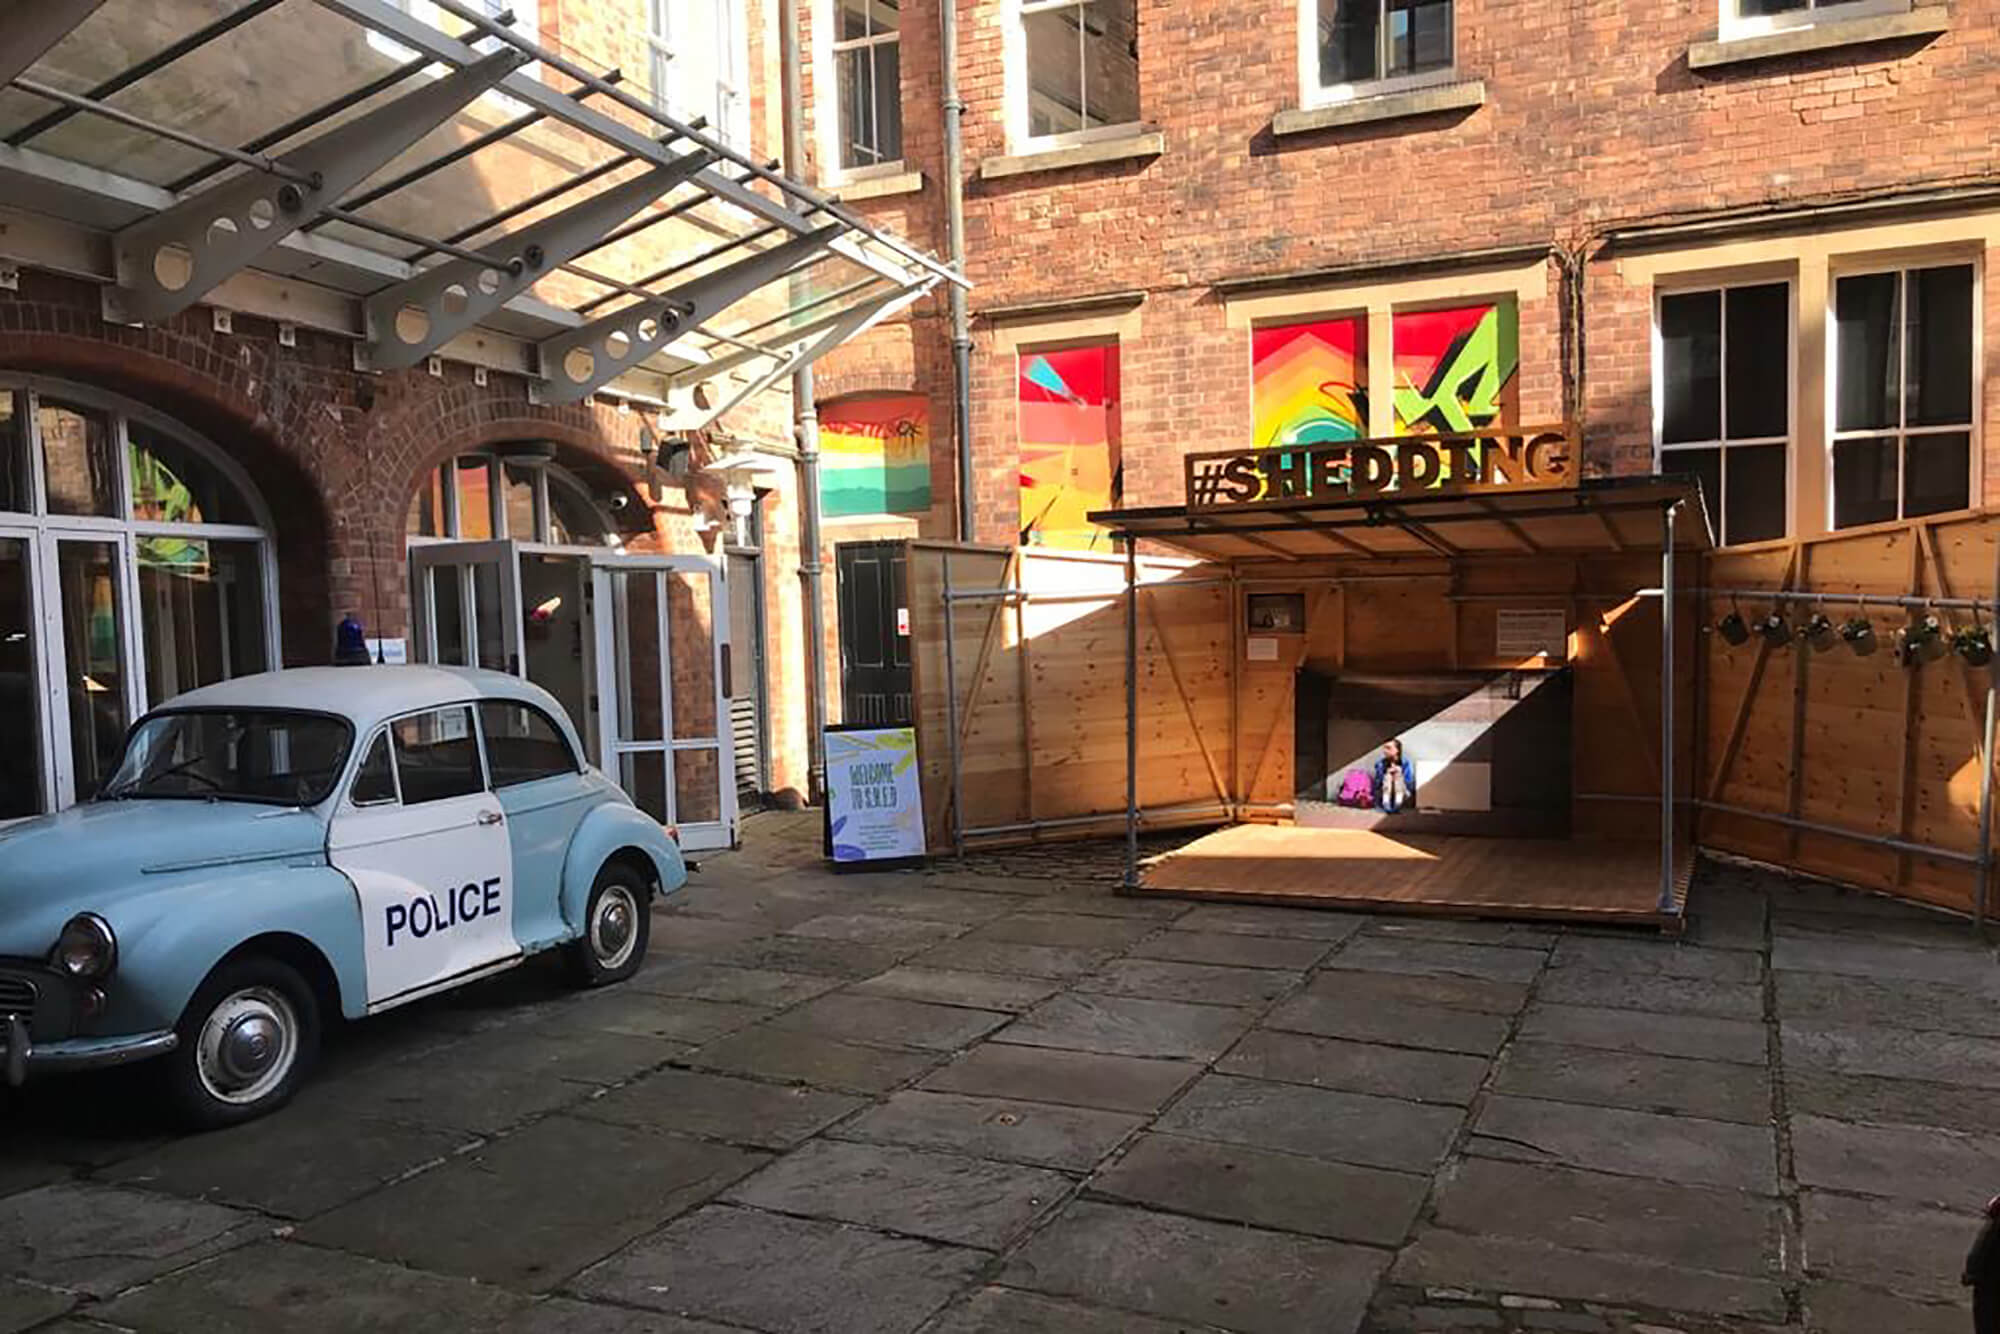 S.H.E.D at the National Justice Museum, Nottingham, next to an old Morris Minor police car